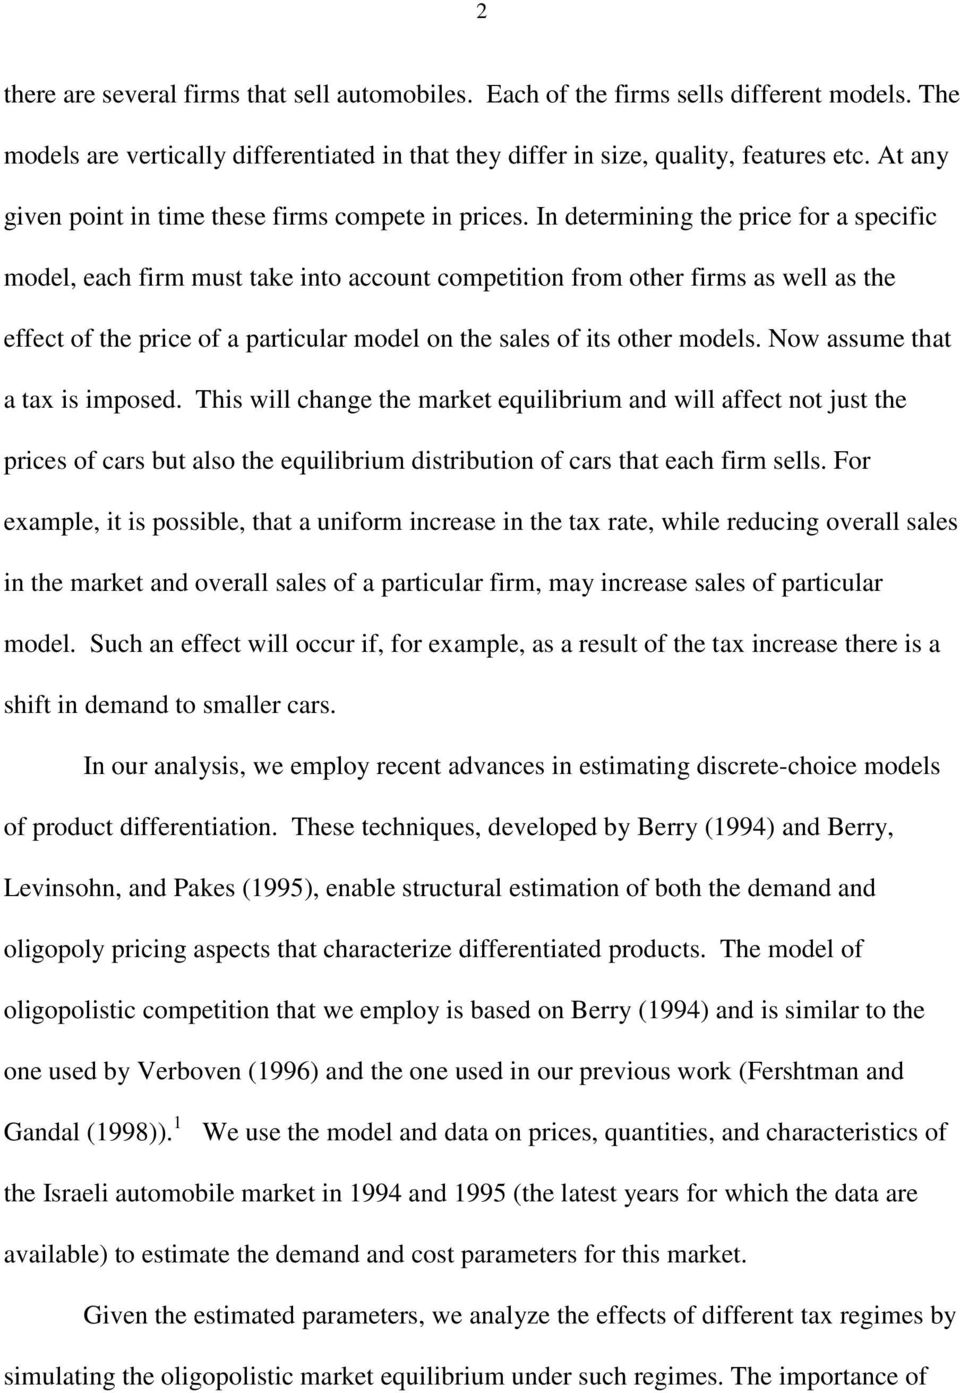 In determining the price for a specific model, each firm must take into account competition from other firms as well as the effect of the price of a particular model on the sales of its other models.